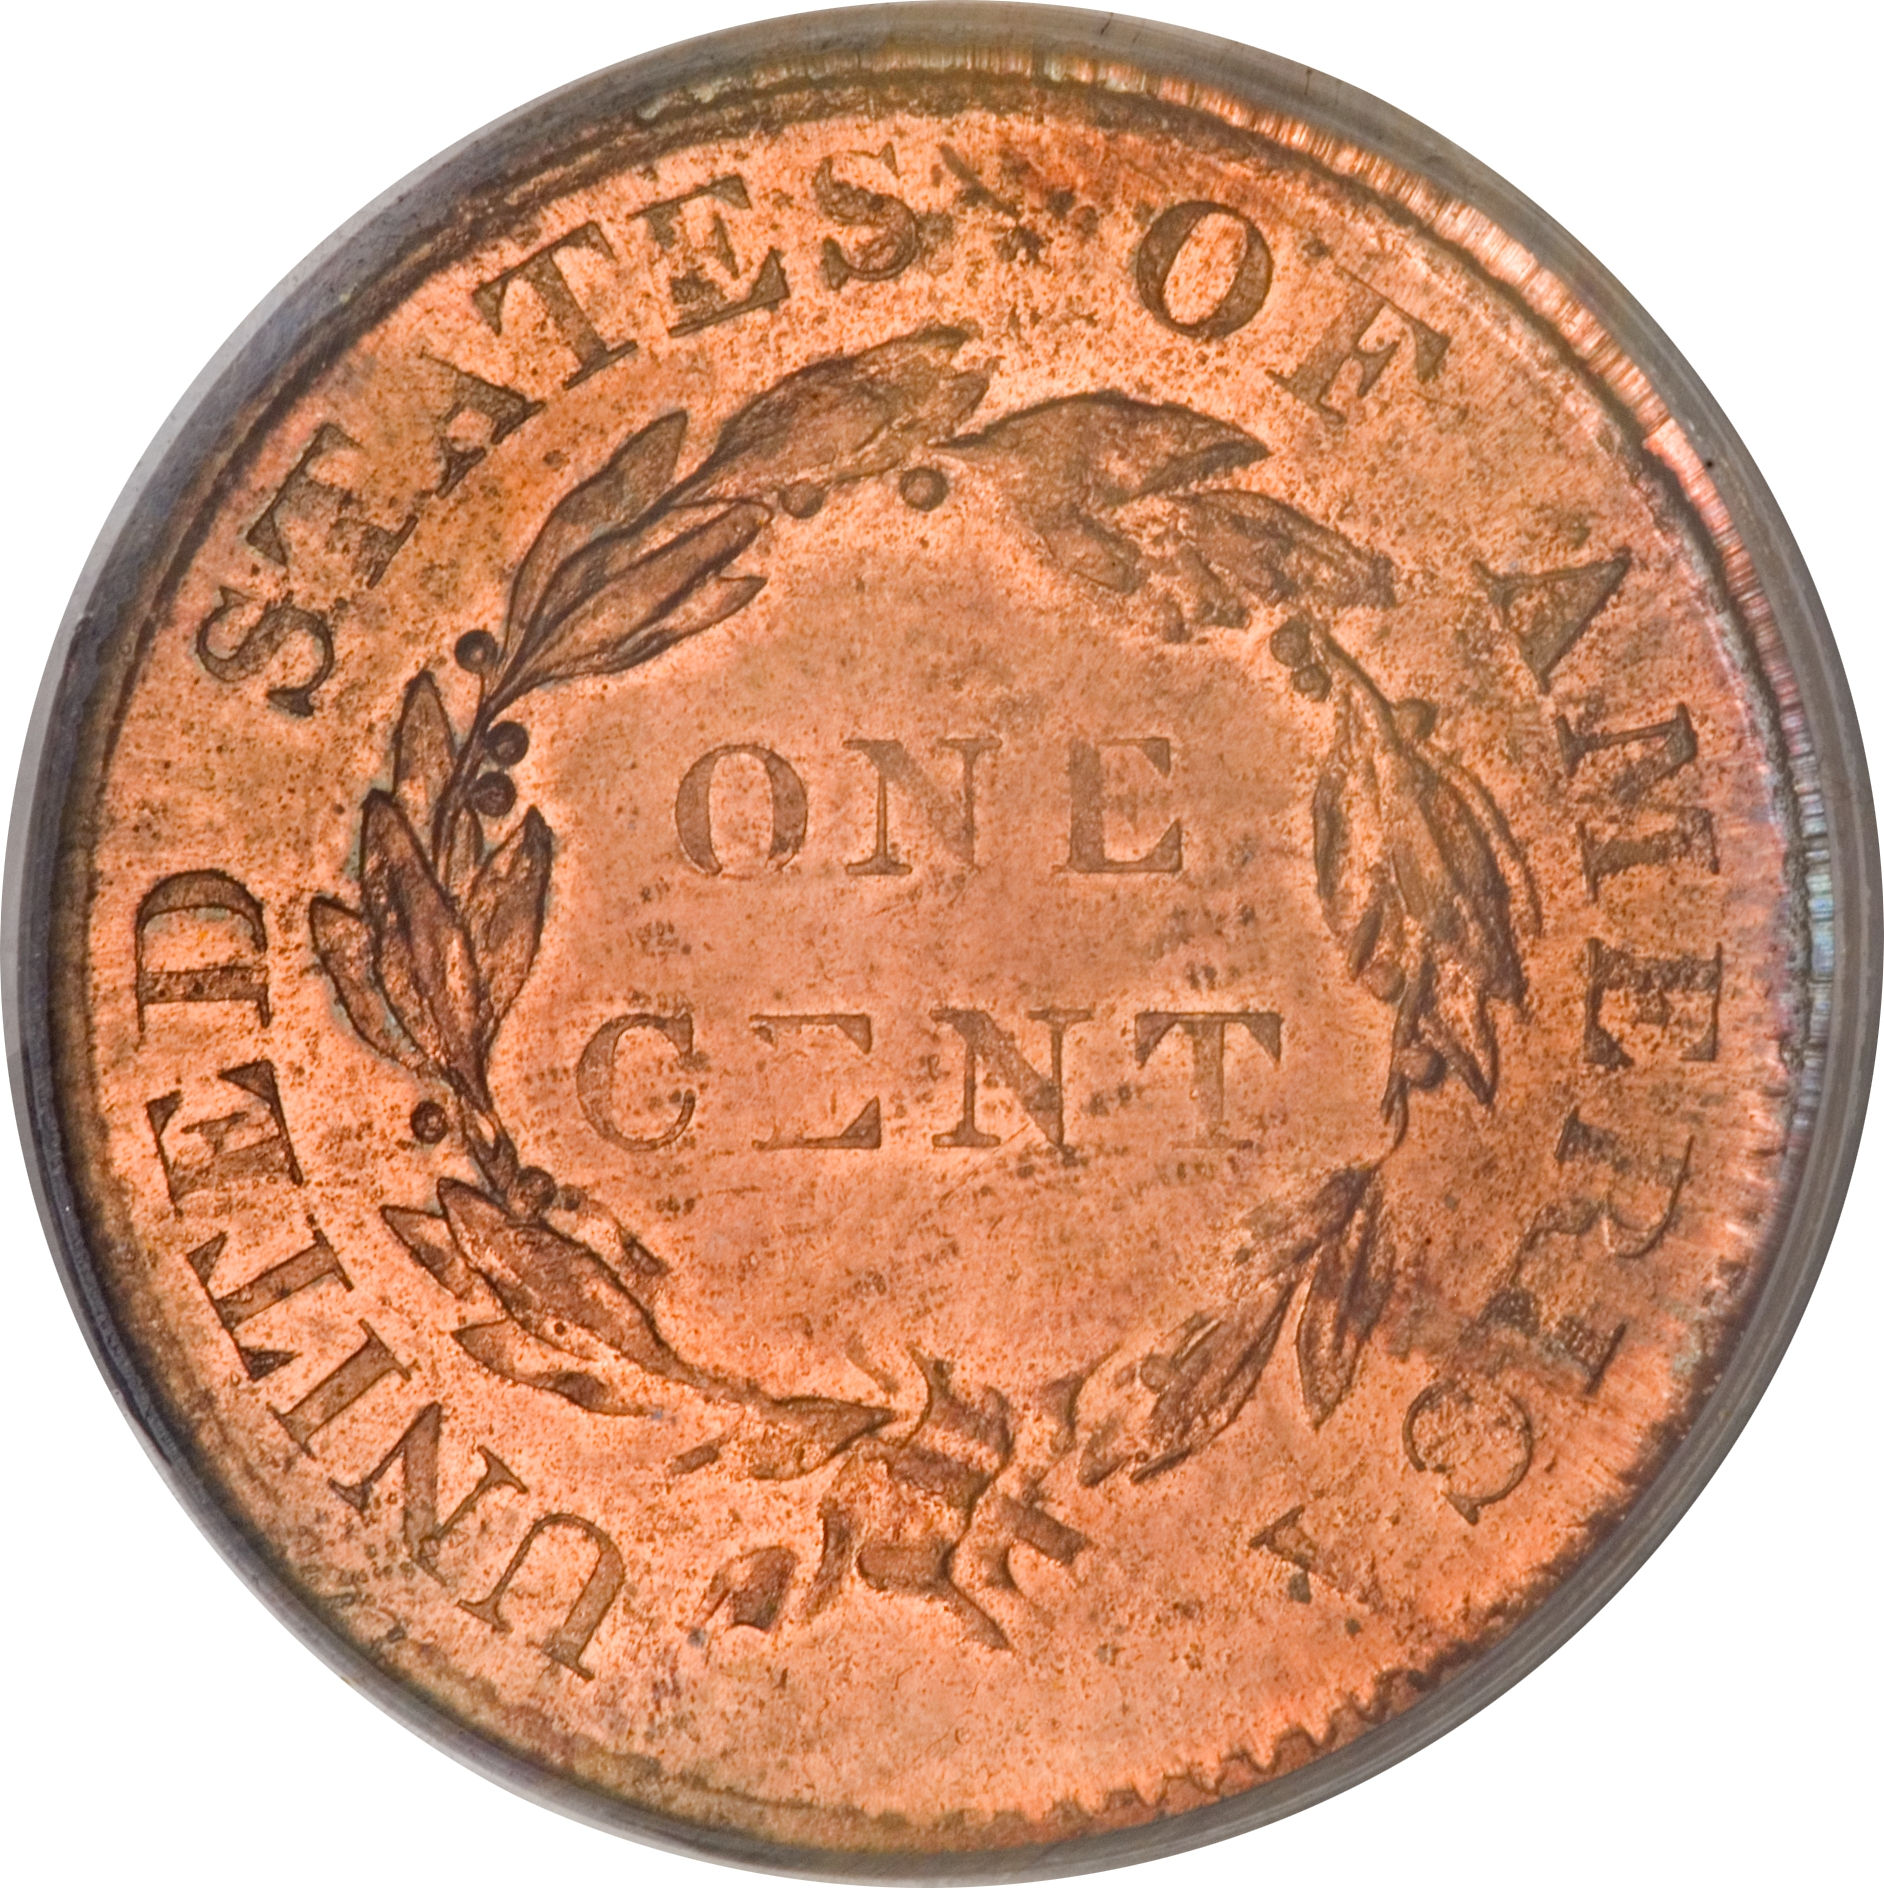 Reverse of PCGS MS-66 Red 1804 restrike large cent, offered as Lot 1031 in the 2009 April-May Cincinnati, Ohio, Central States Numismatic Society U.S. Coin Auction.